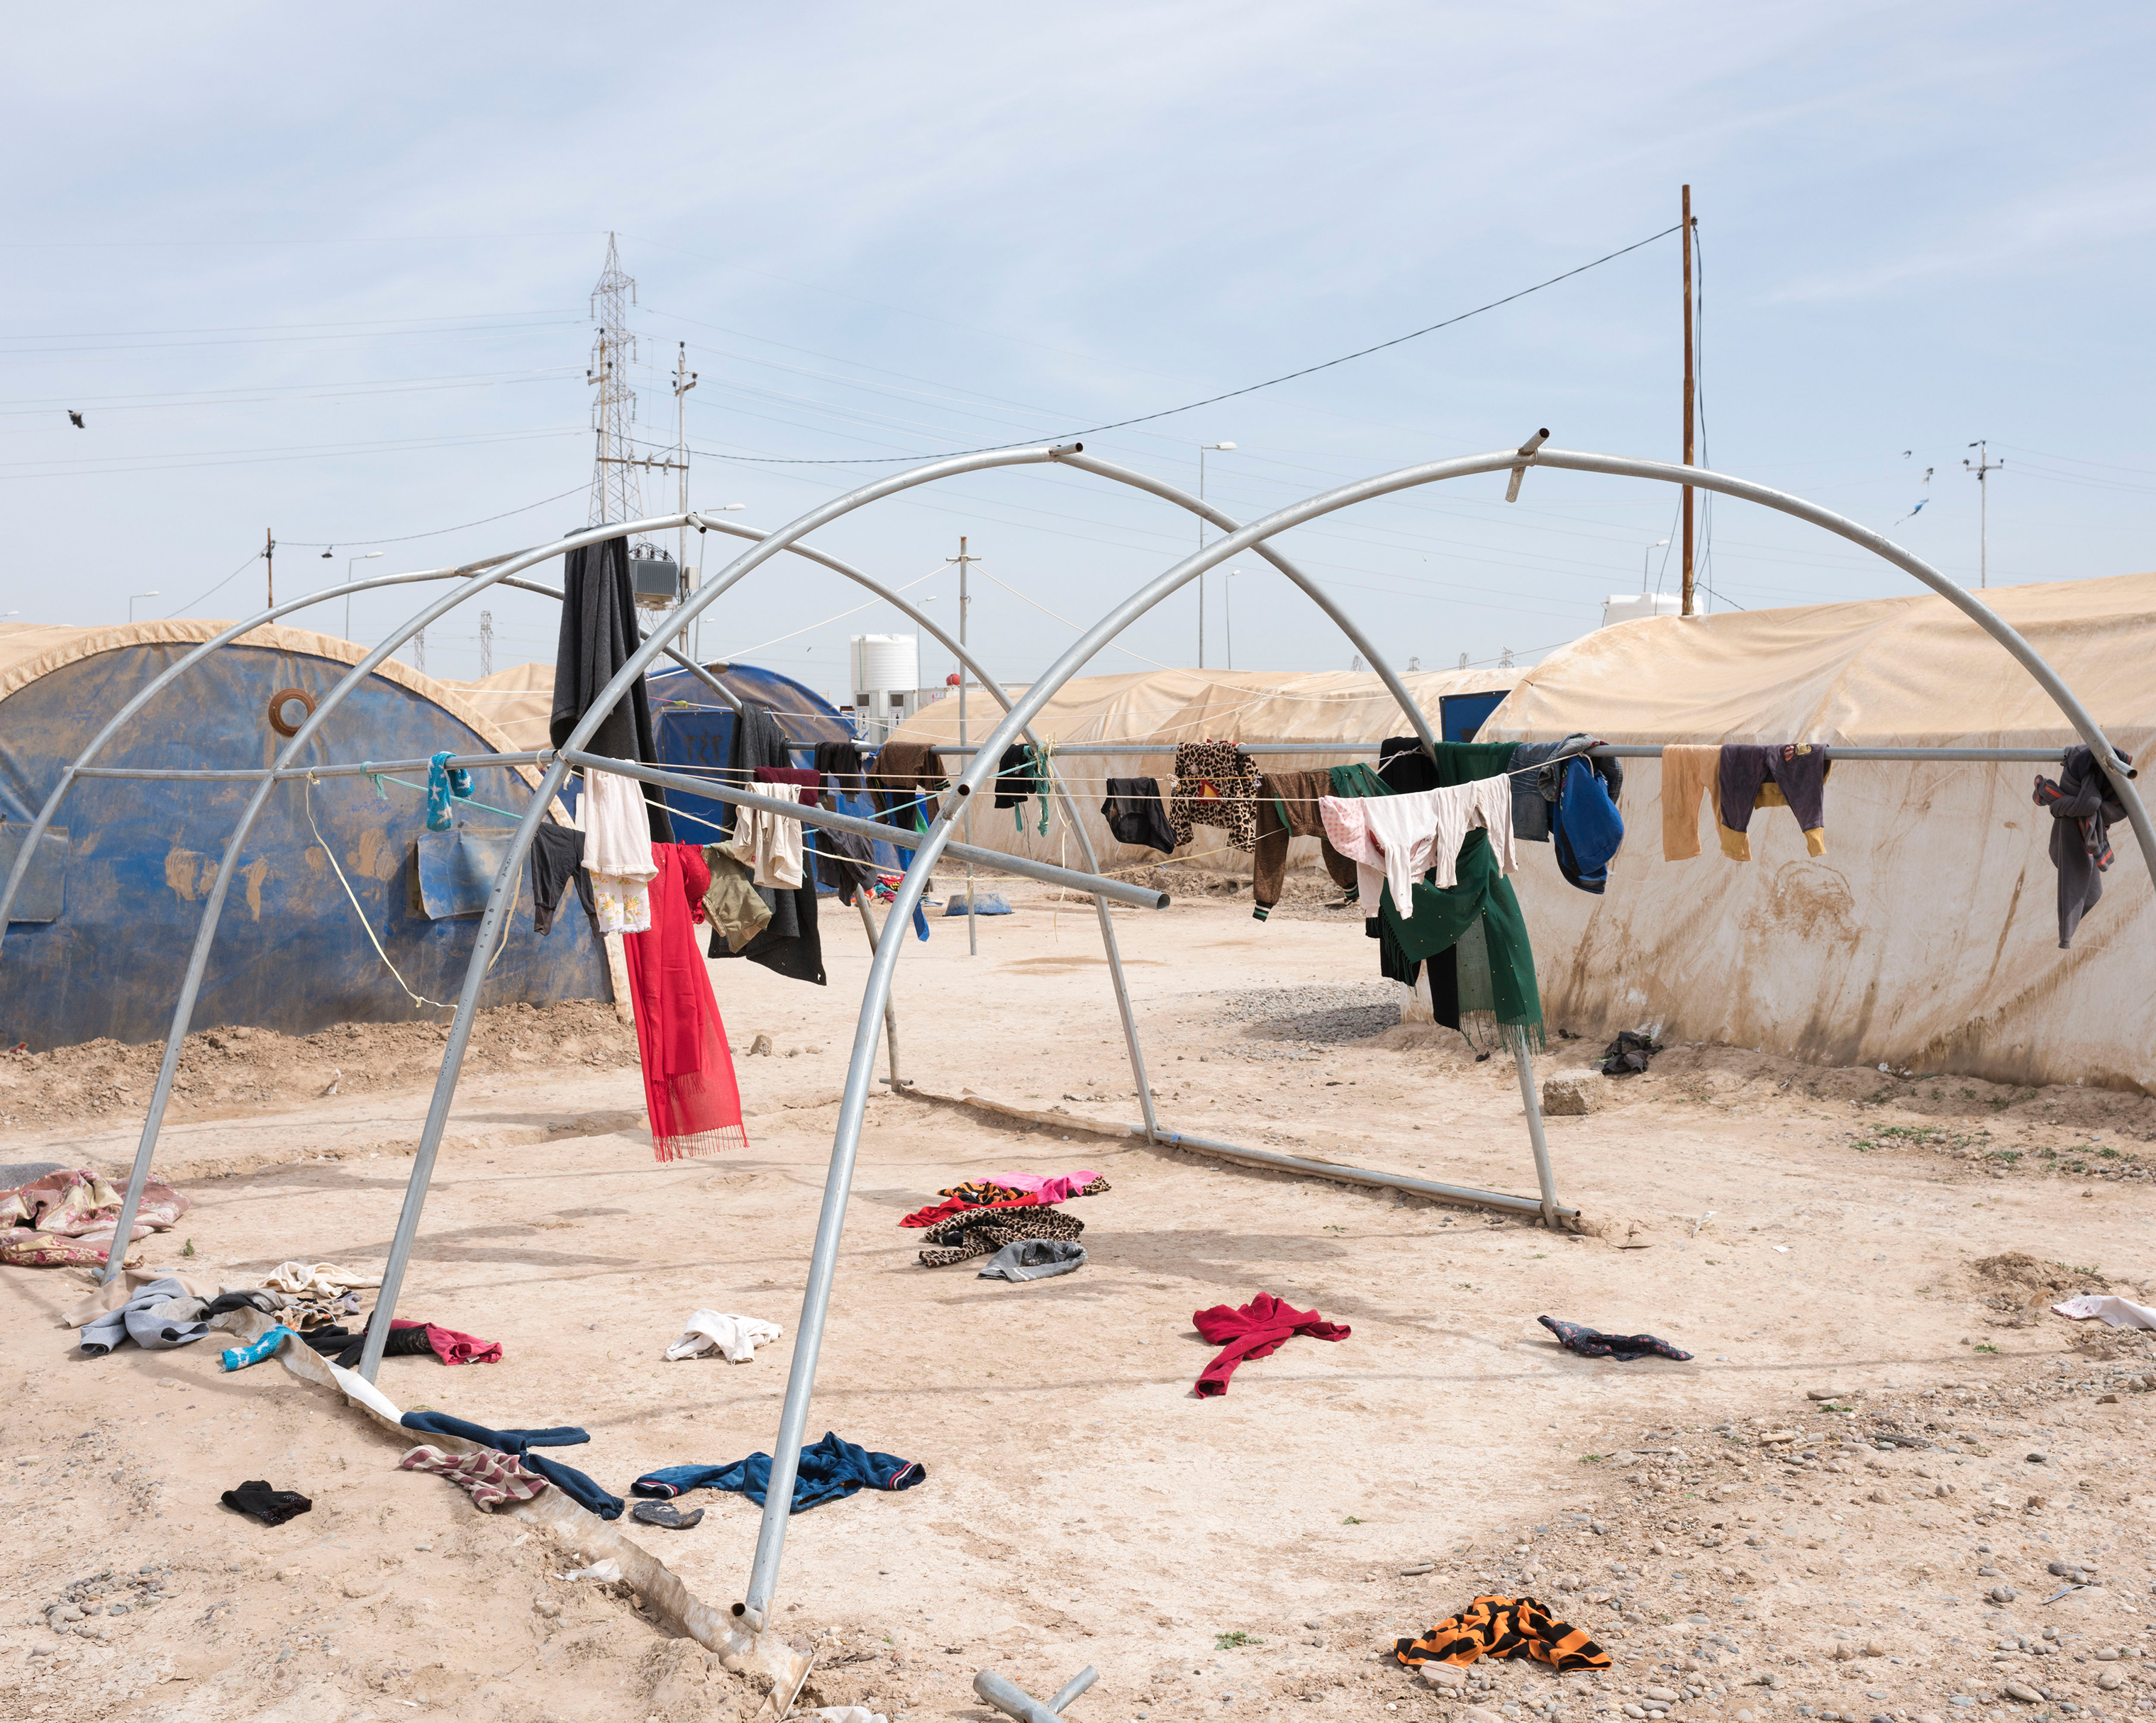 A refugee camp where relatives of ISIS fighters are detained in Iraq in April.